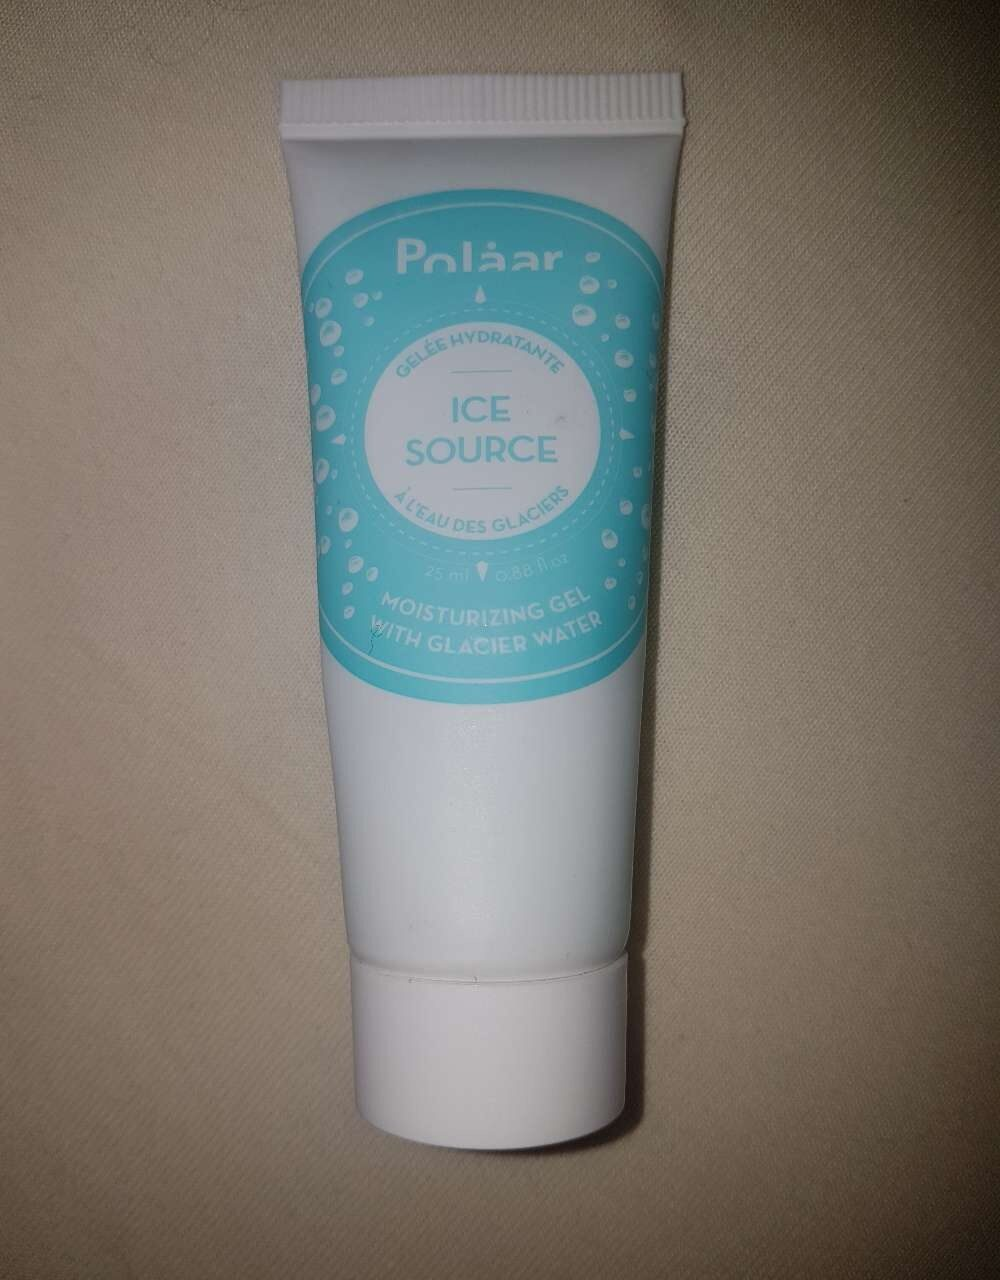 Ice source - Product